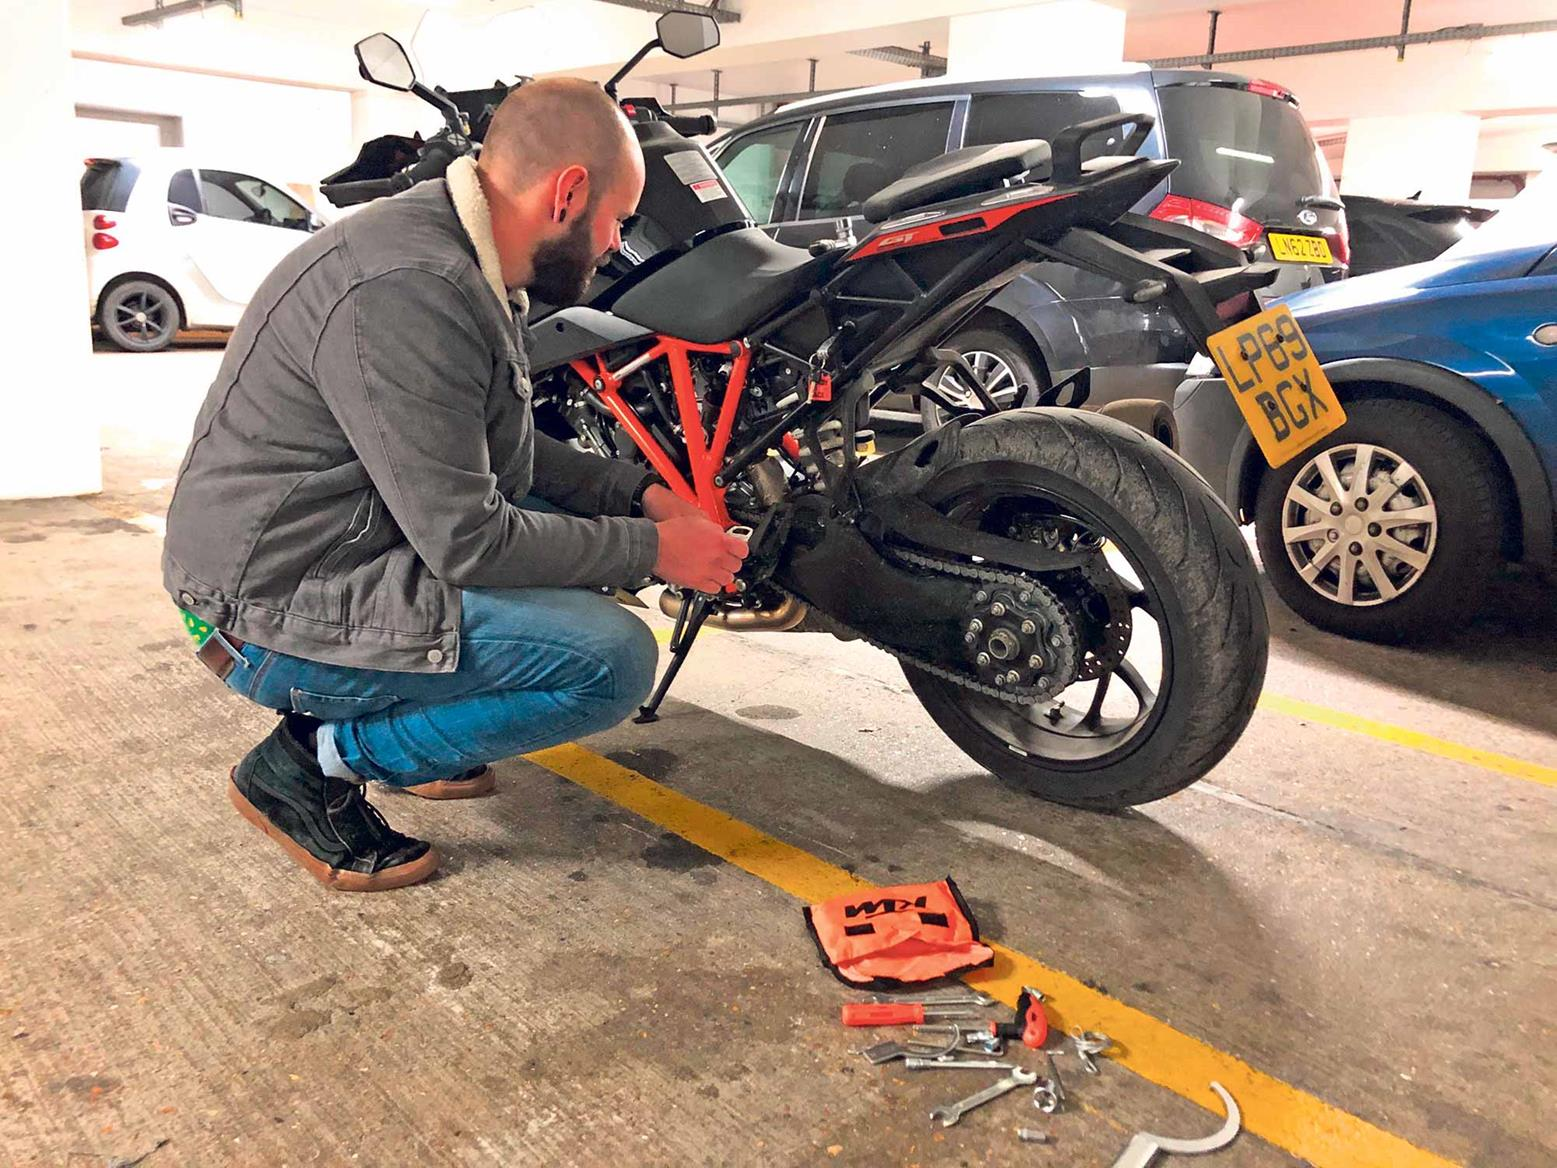 Adjusting the KTM's chain in a London carpark